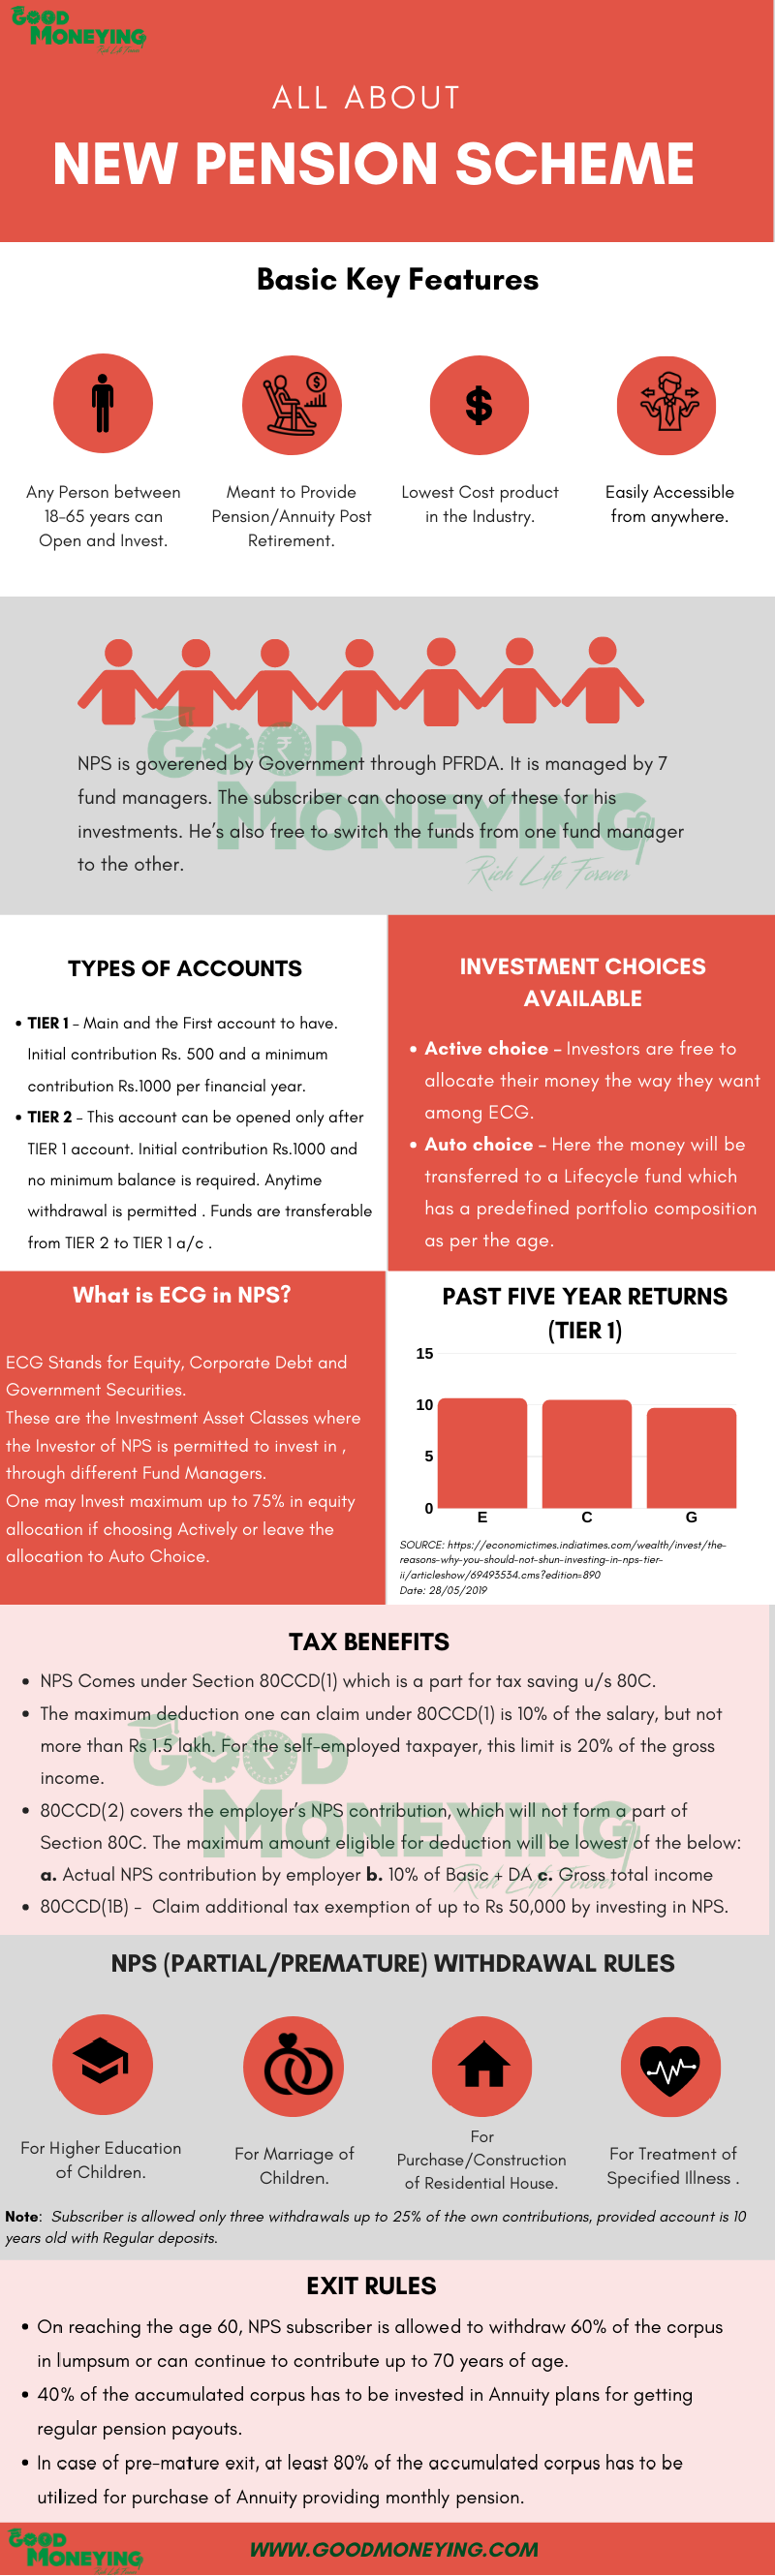 New Pension Scheme Infographic